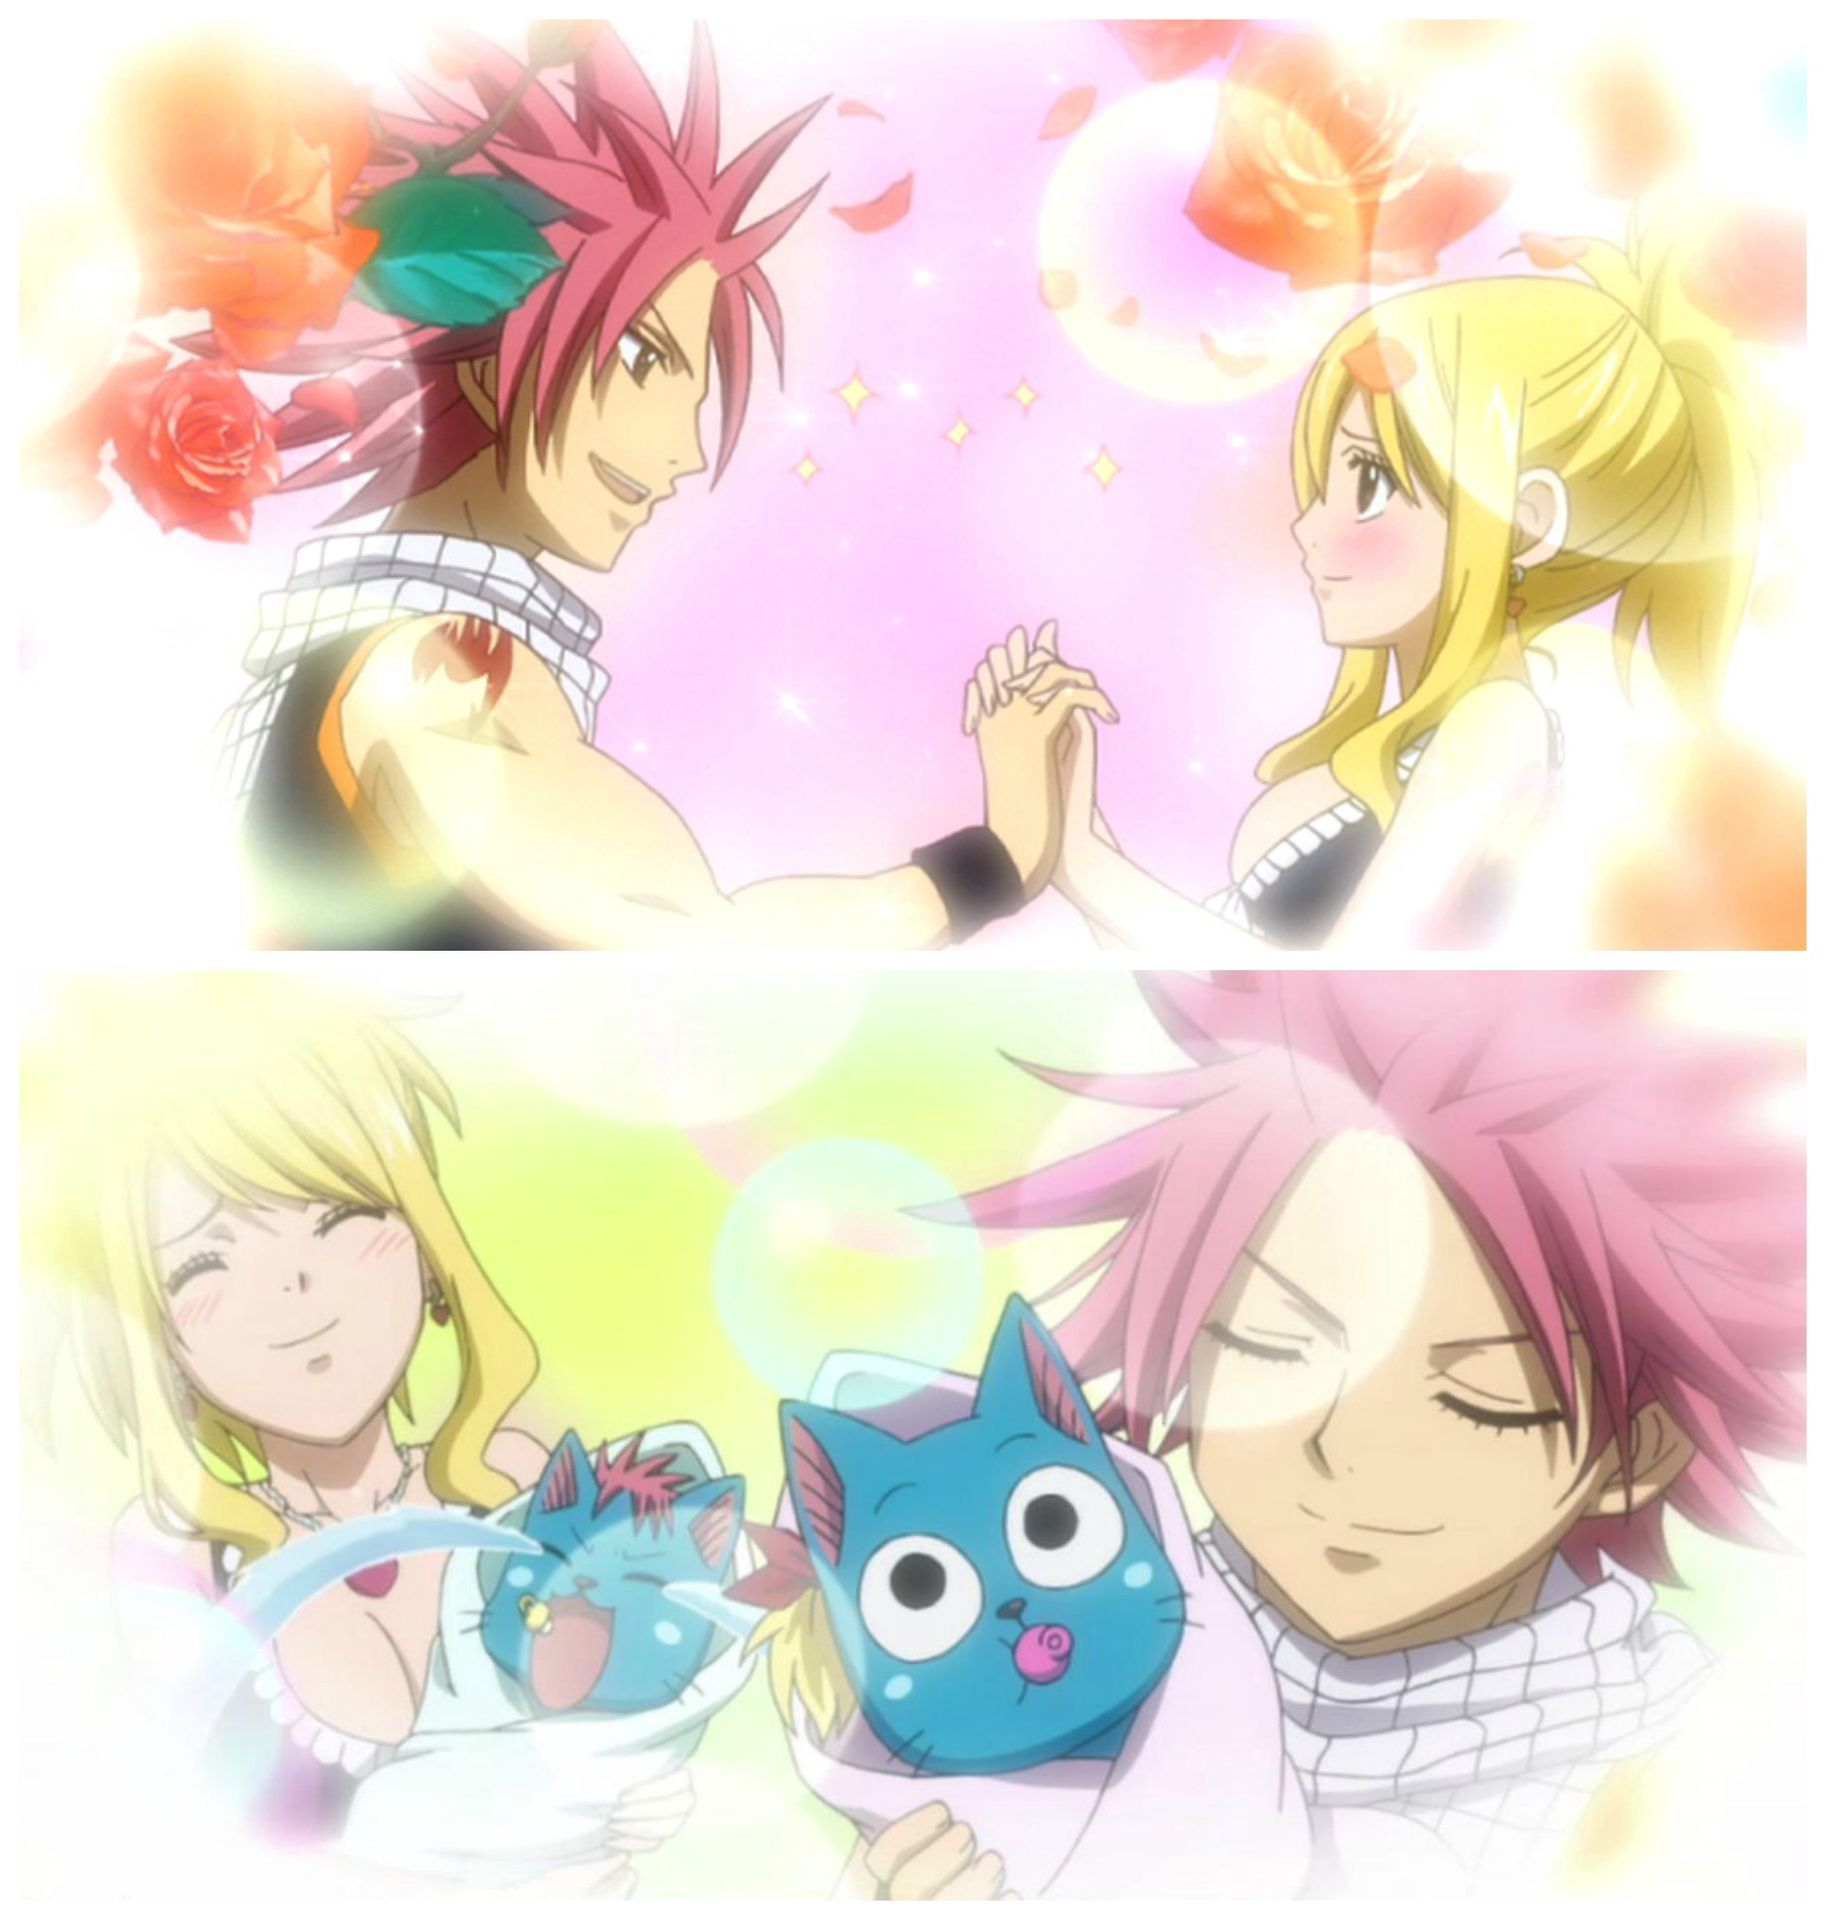 A Vampire in Love (With images) Fairy tail fanfiction